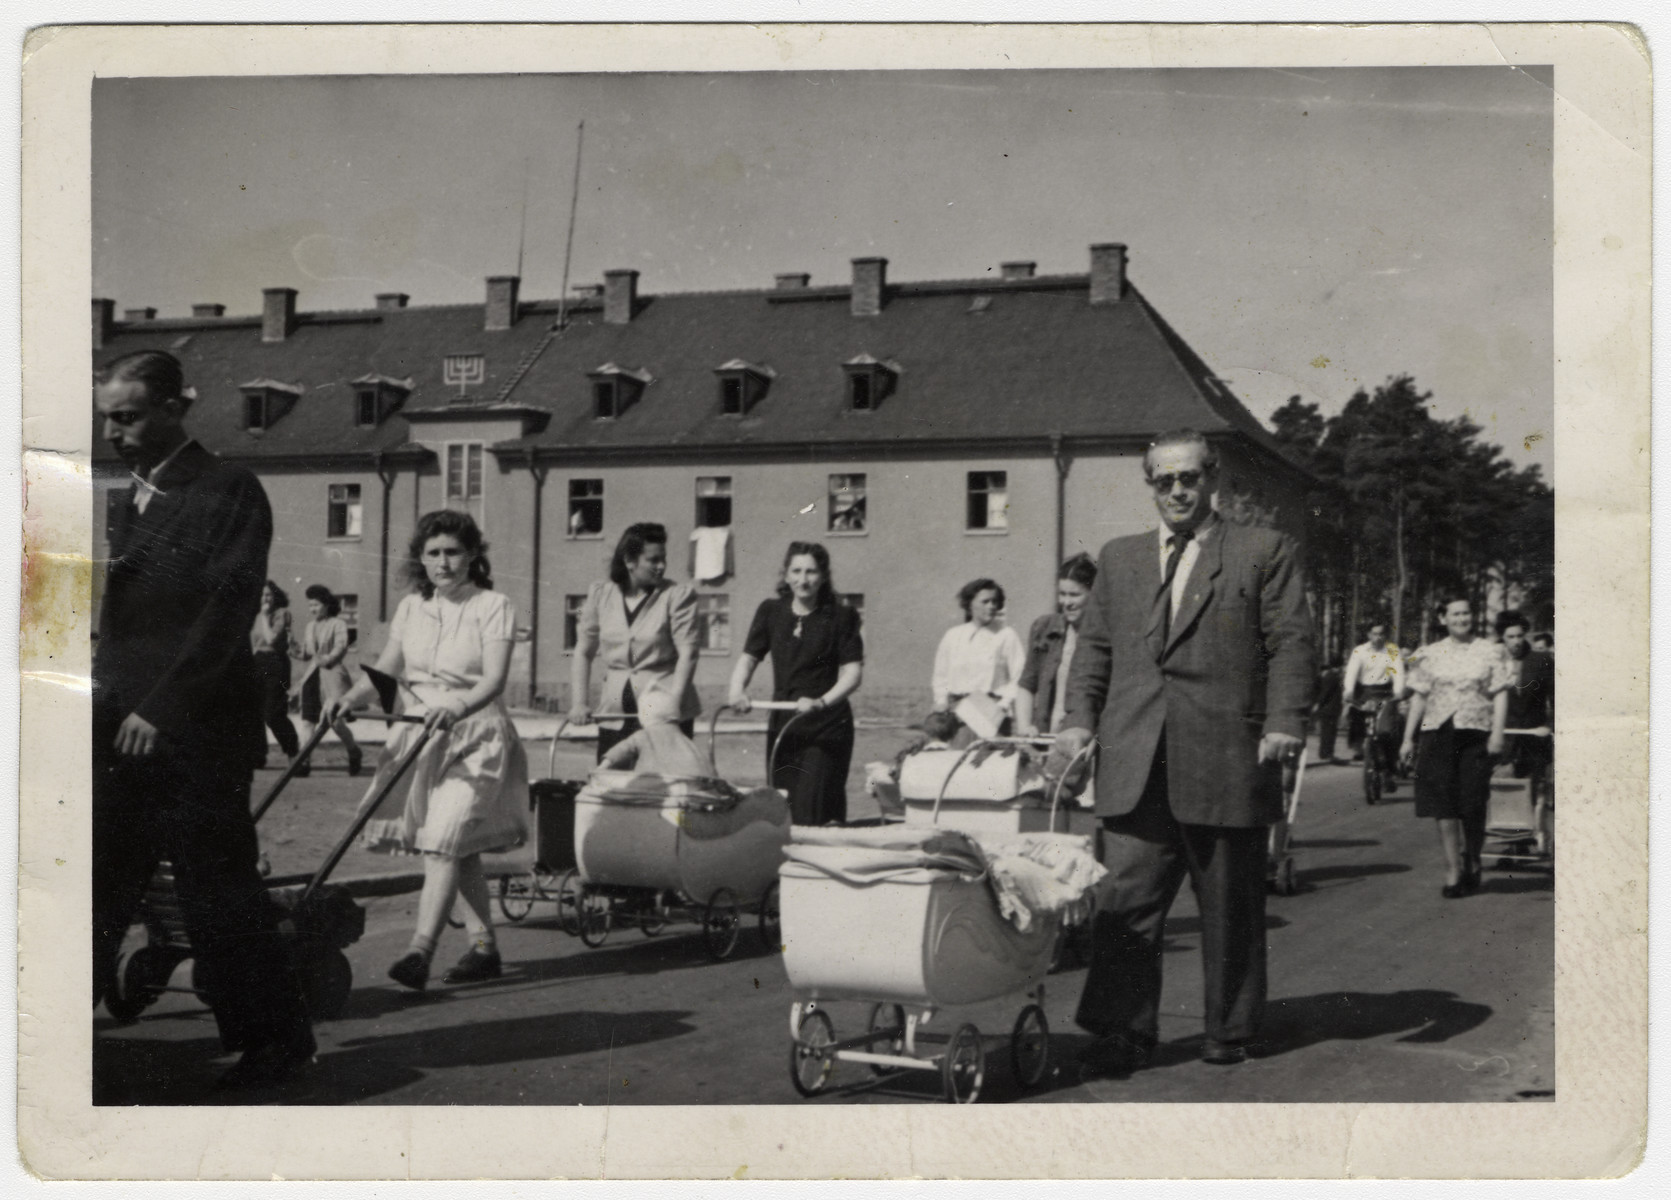 Men and women walk through the central plaza of the Bergen-Belsen displaced persons camp pushing baby carriages.  The gentleman on the right side wearing tinted spectacles, with his right hand on the stroller is Elias Rosengarten.